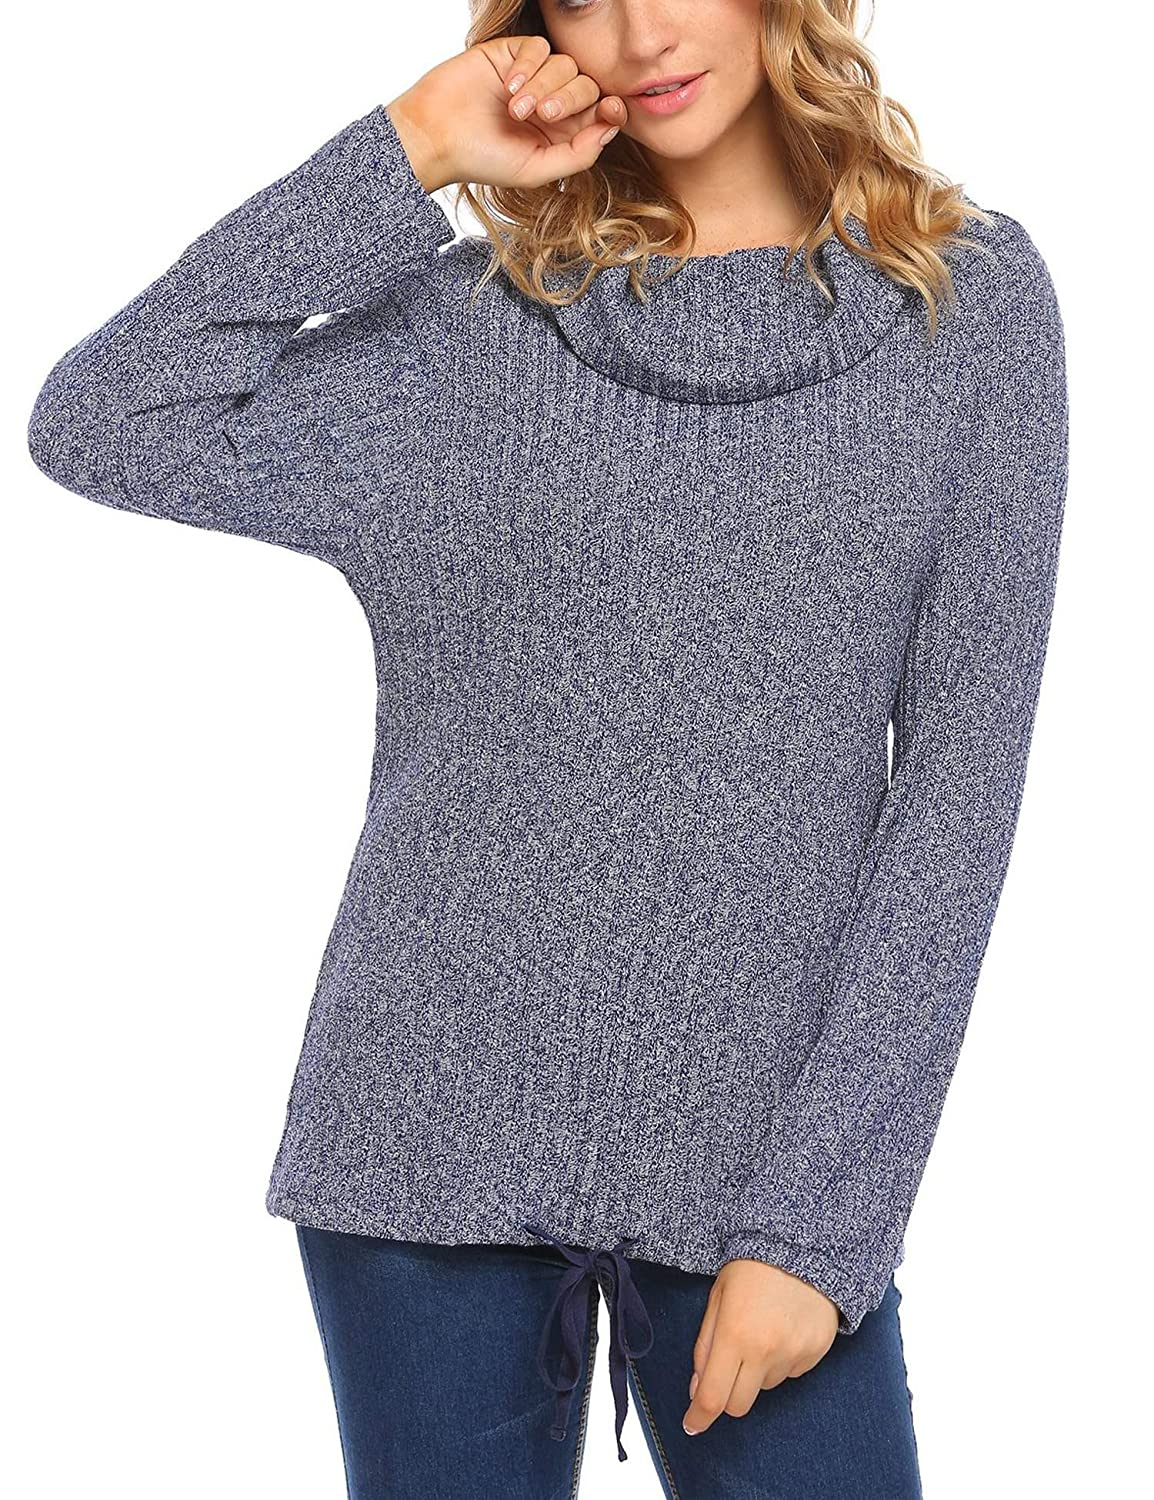 1485937a35 Zeagoo Women s Casual Cowl Neck Stretchy Long Sleeve Pullover Knit Sweater  at Amazon Women s Clothing store